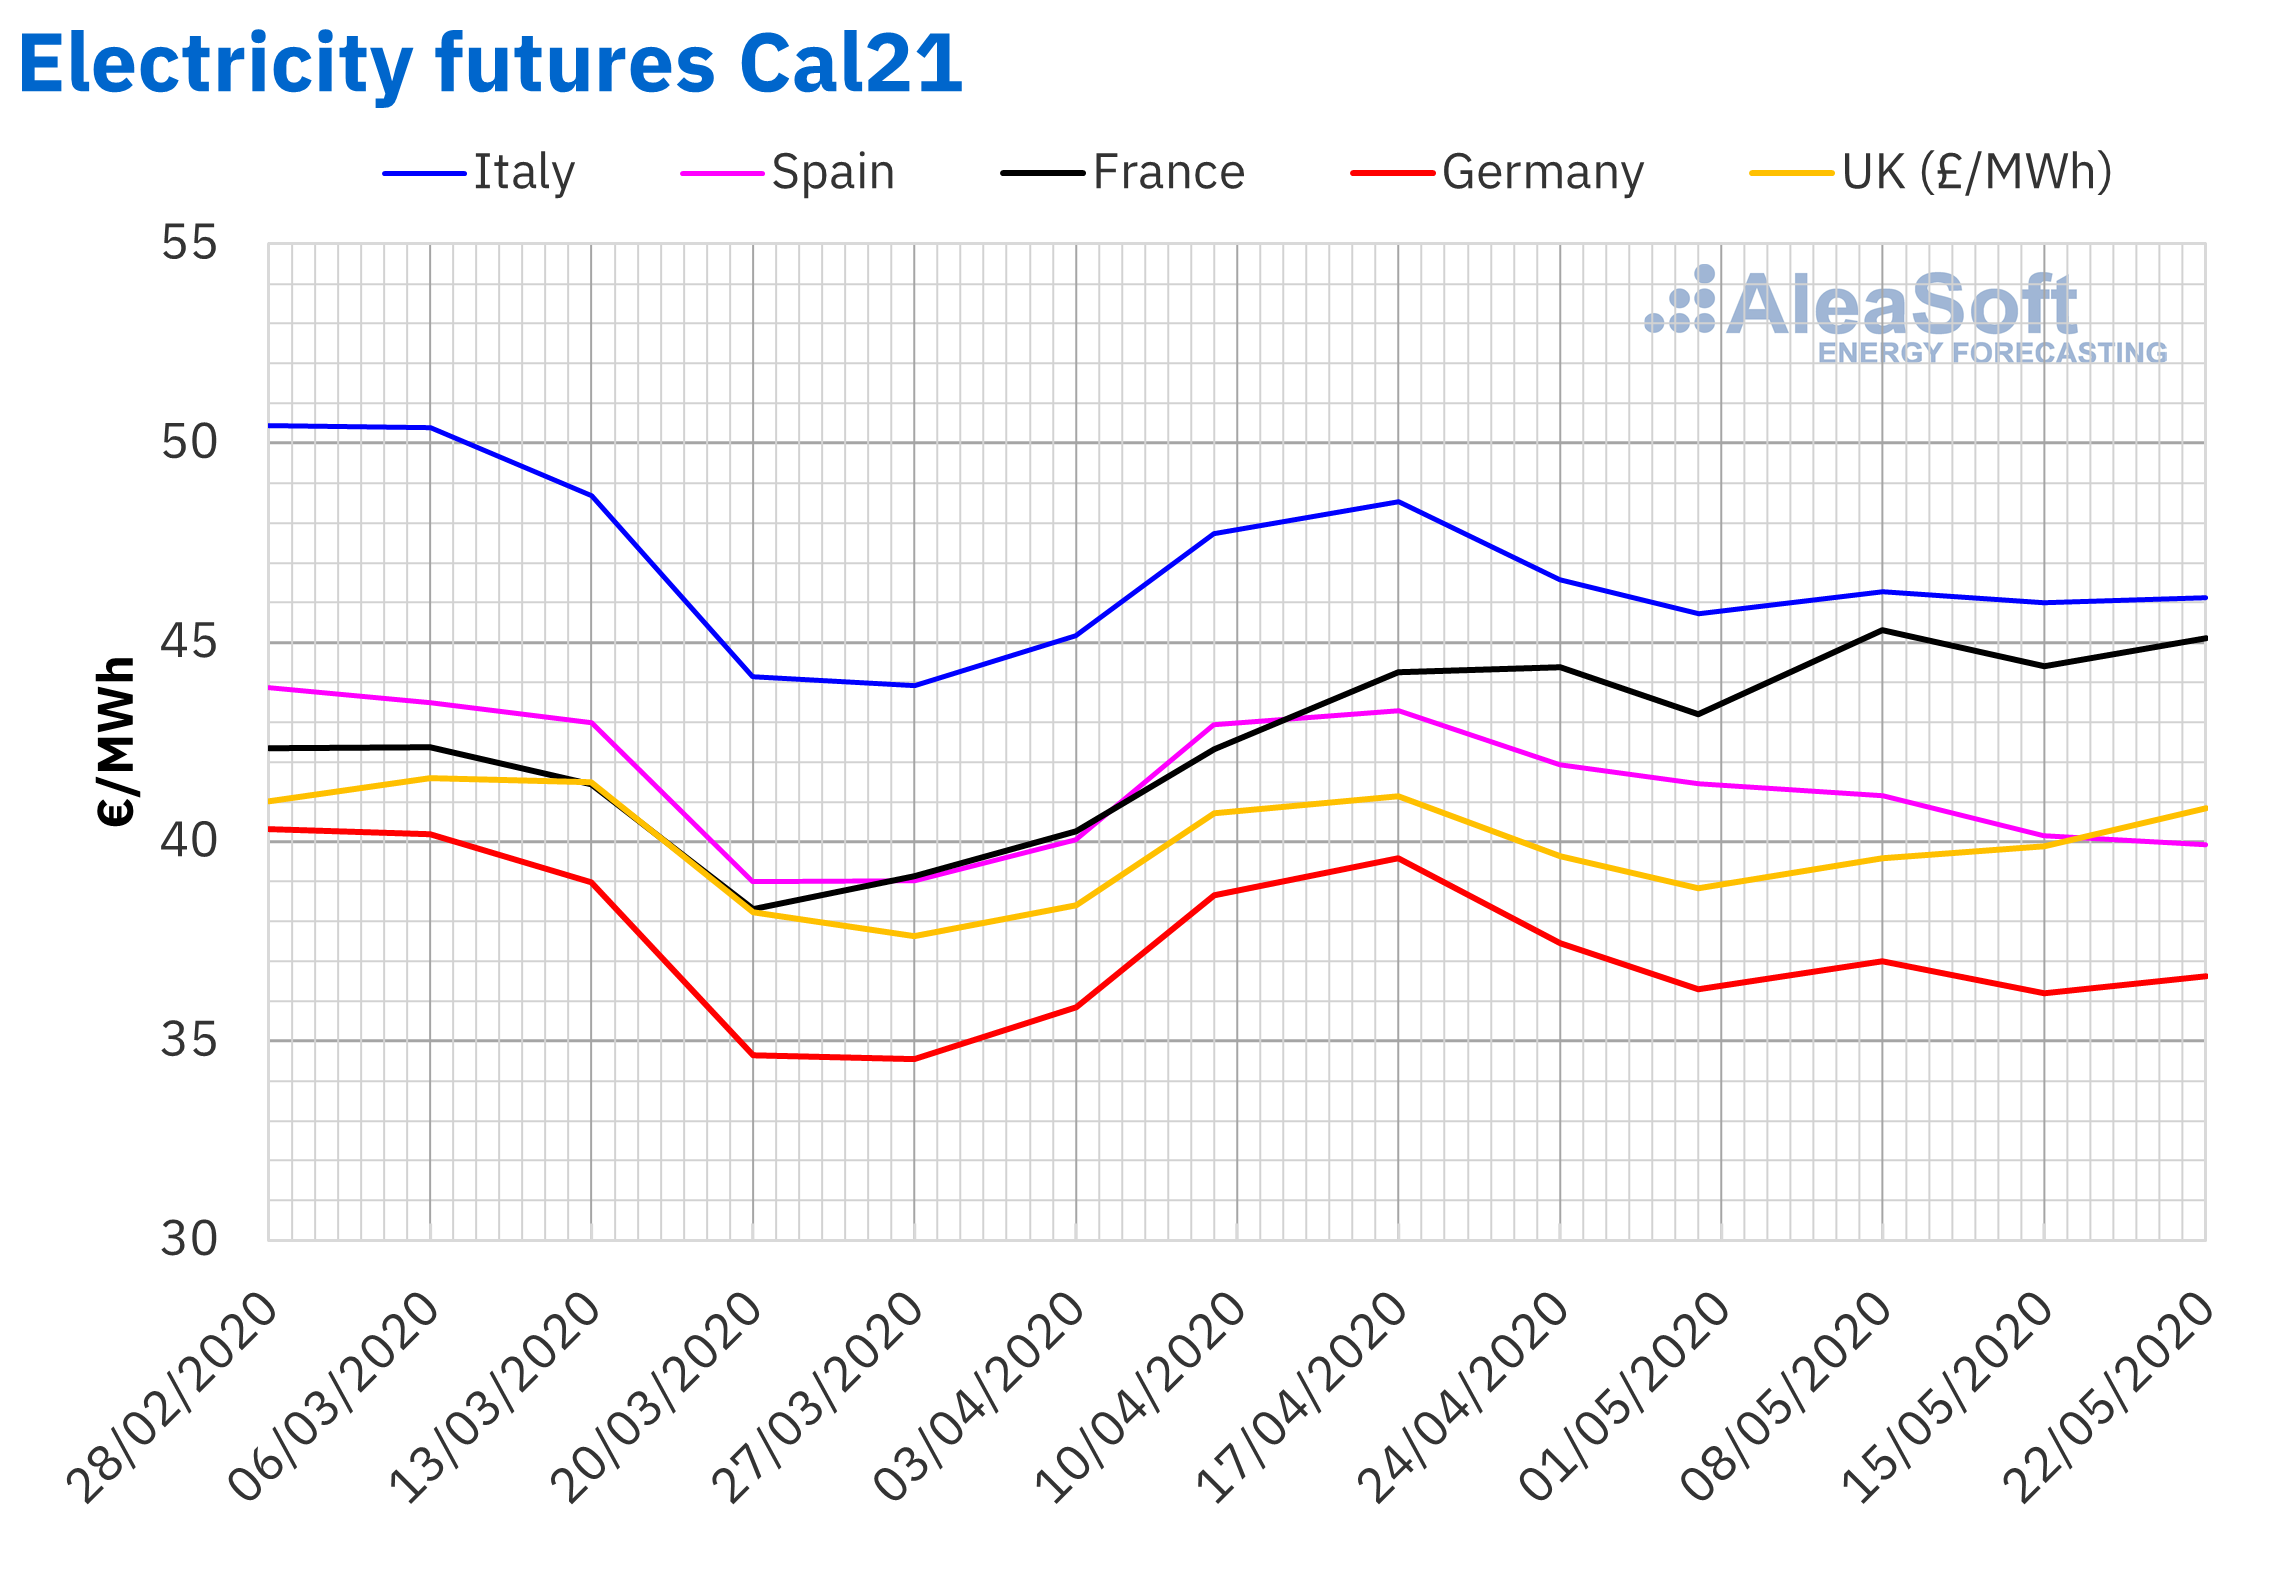 AleaSoft - Electricity futures prices Europe